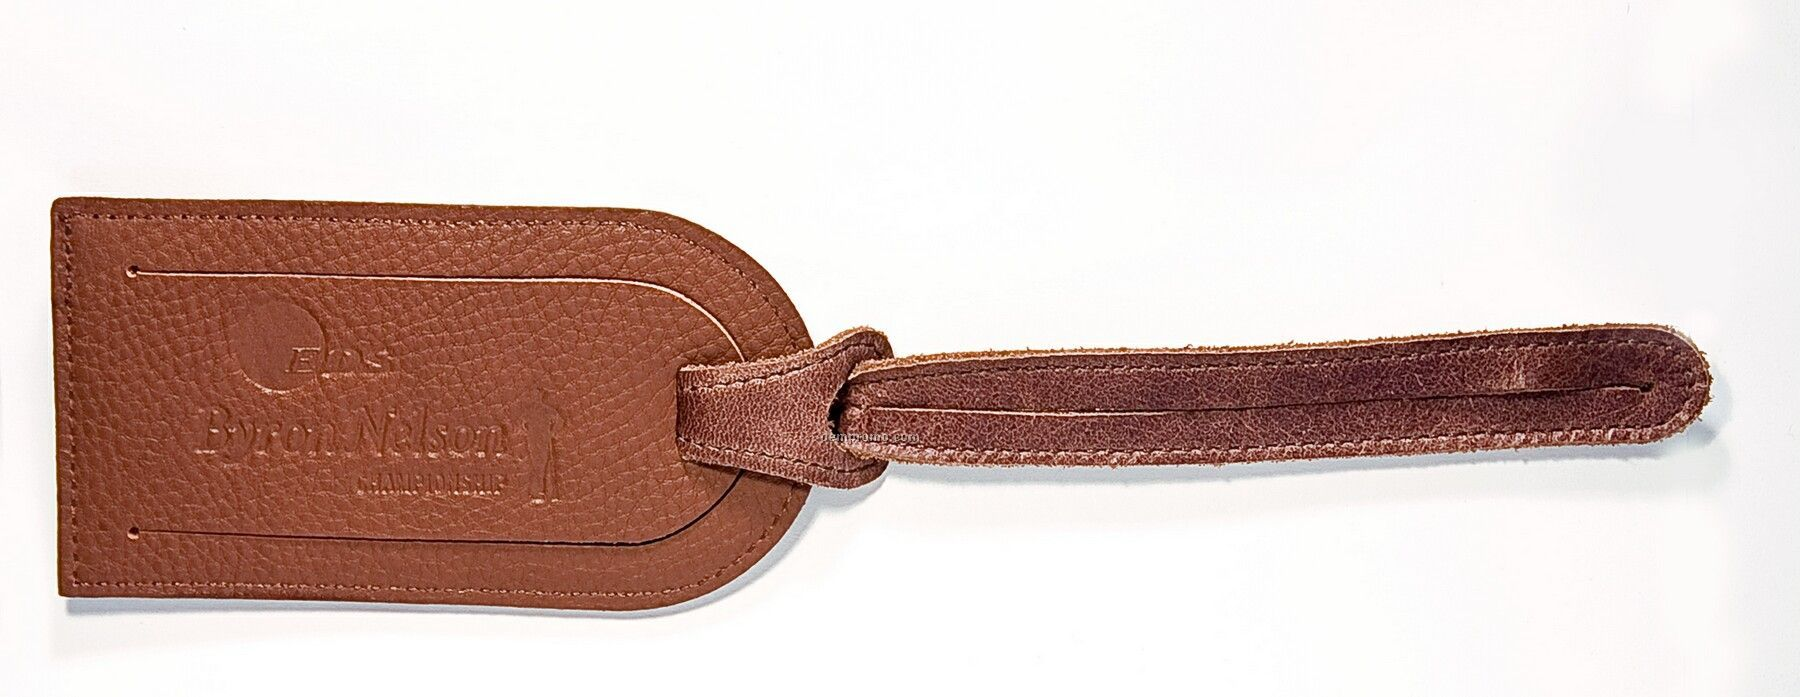 Leather Luggage Tag With Concealed Id Window